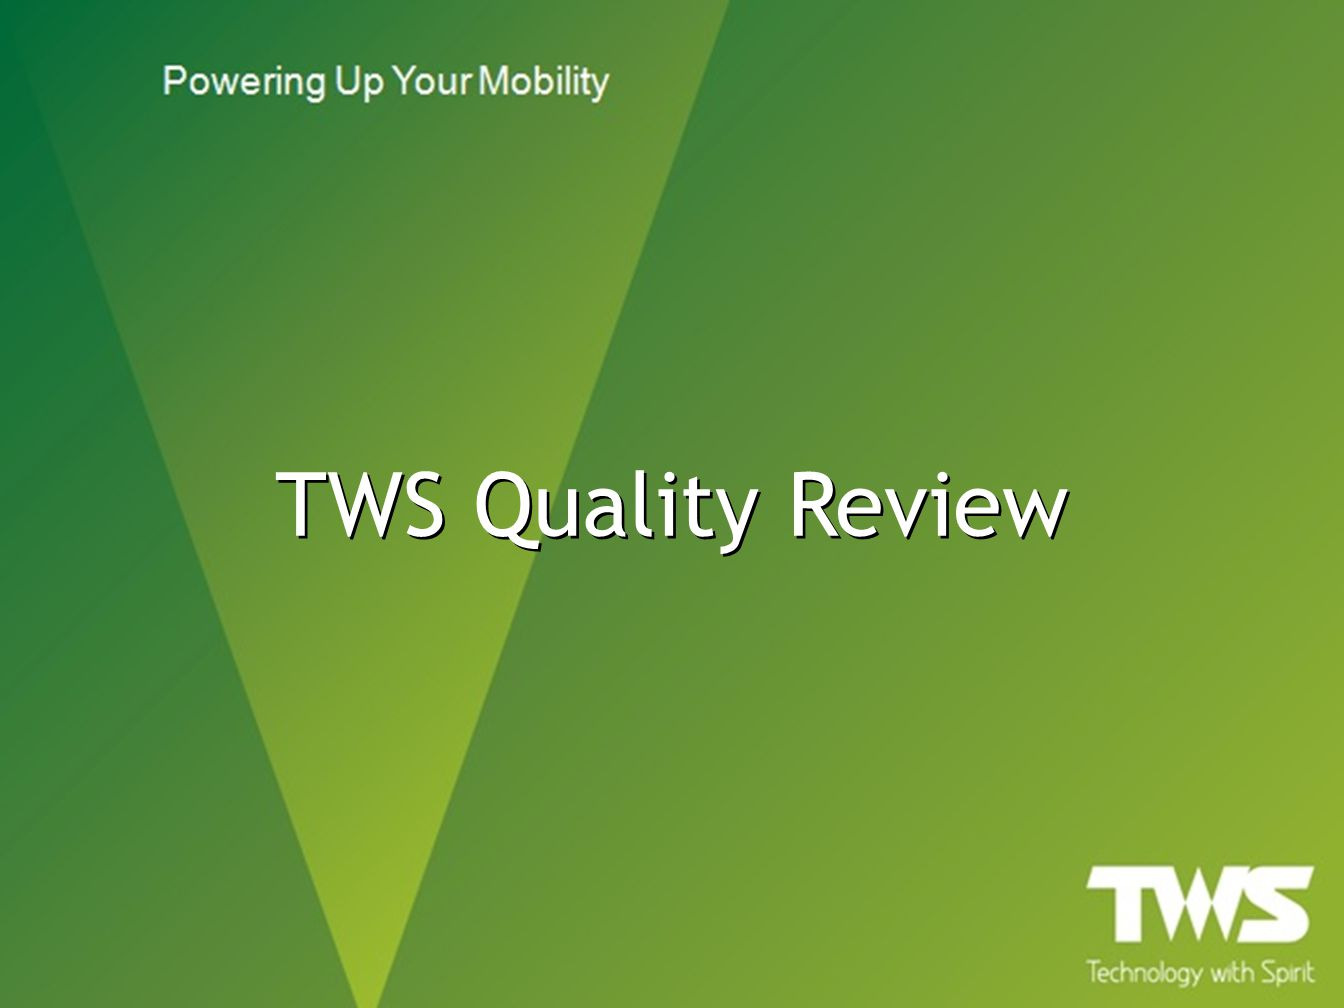 TWS Quality Review